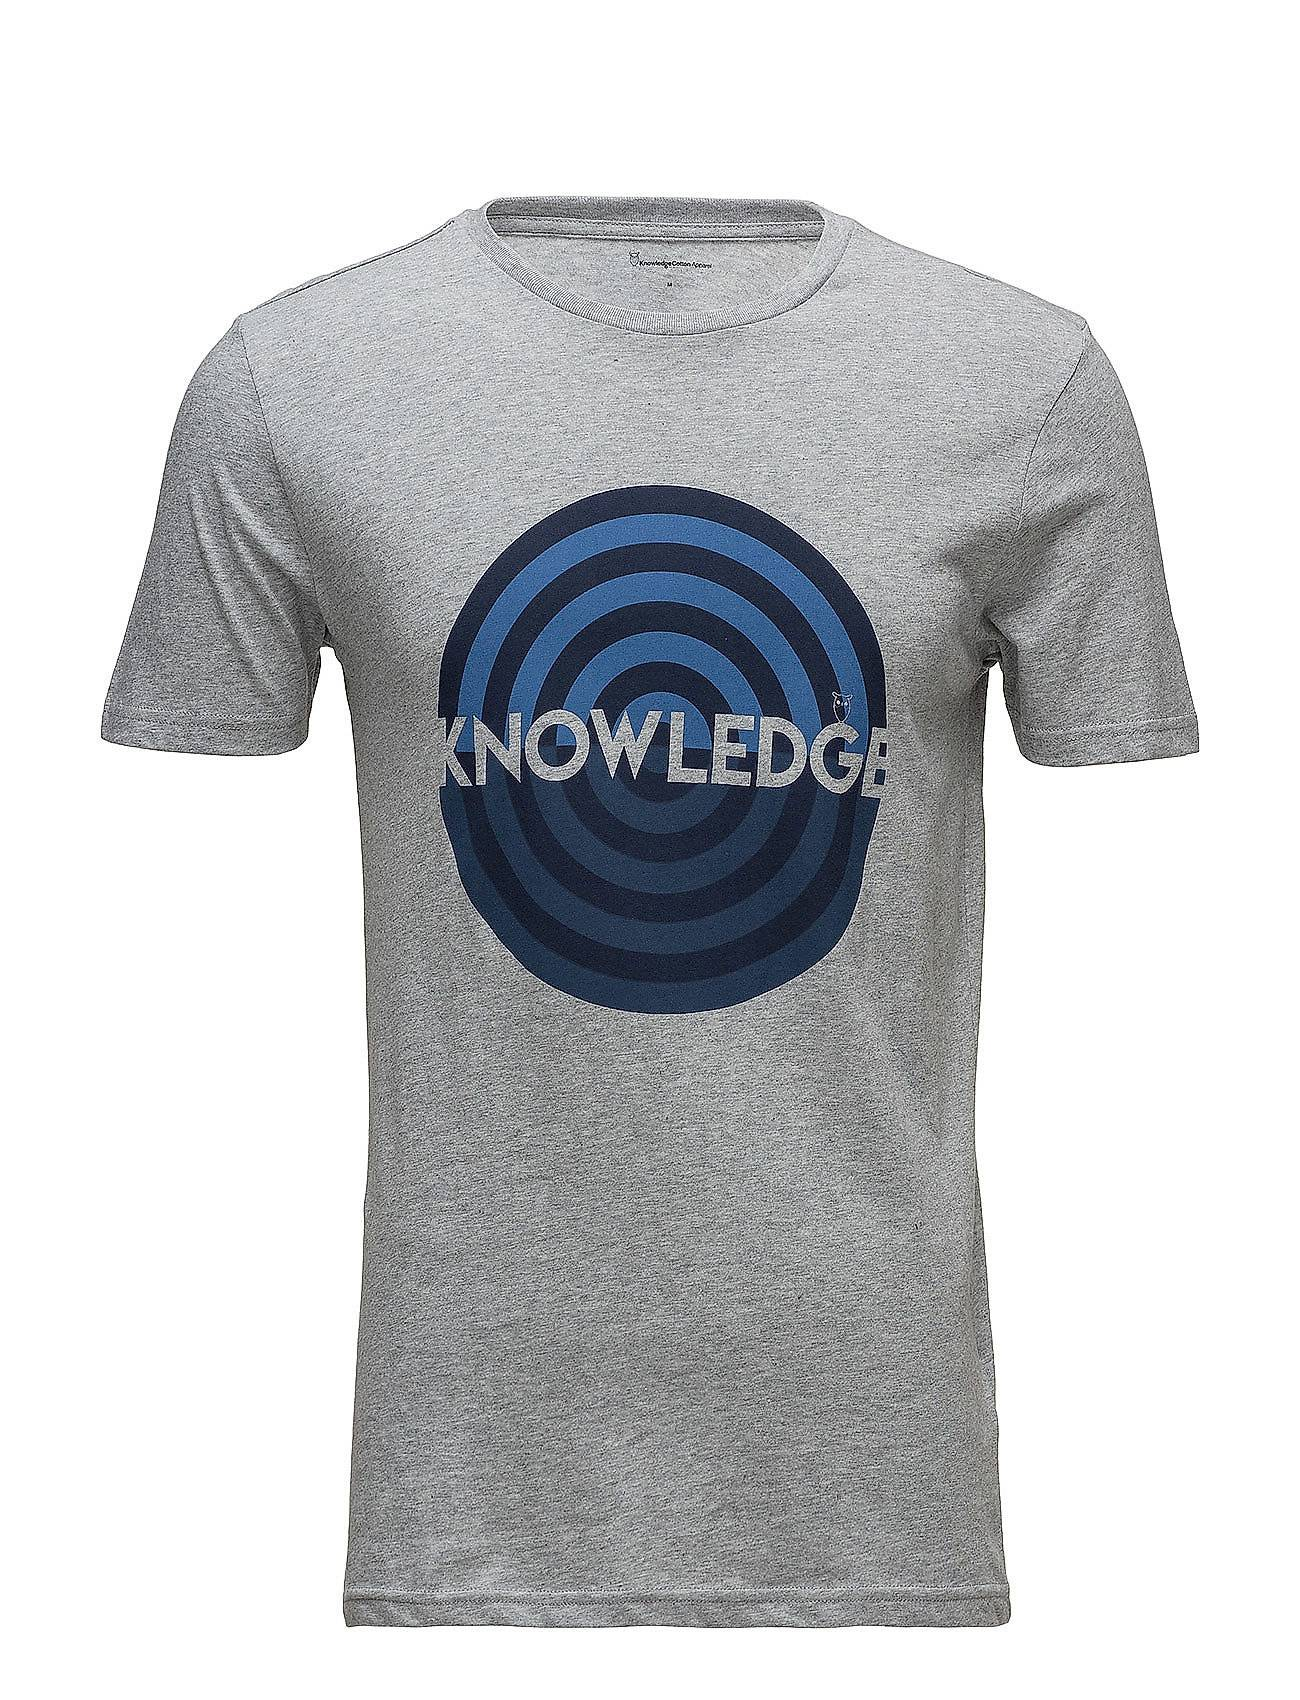 Knowledge Cotton Apparel T-Shirt With Knowledge Print - Gots